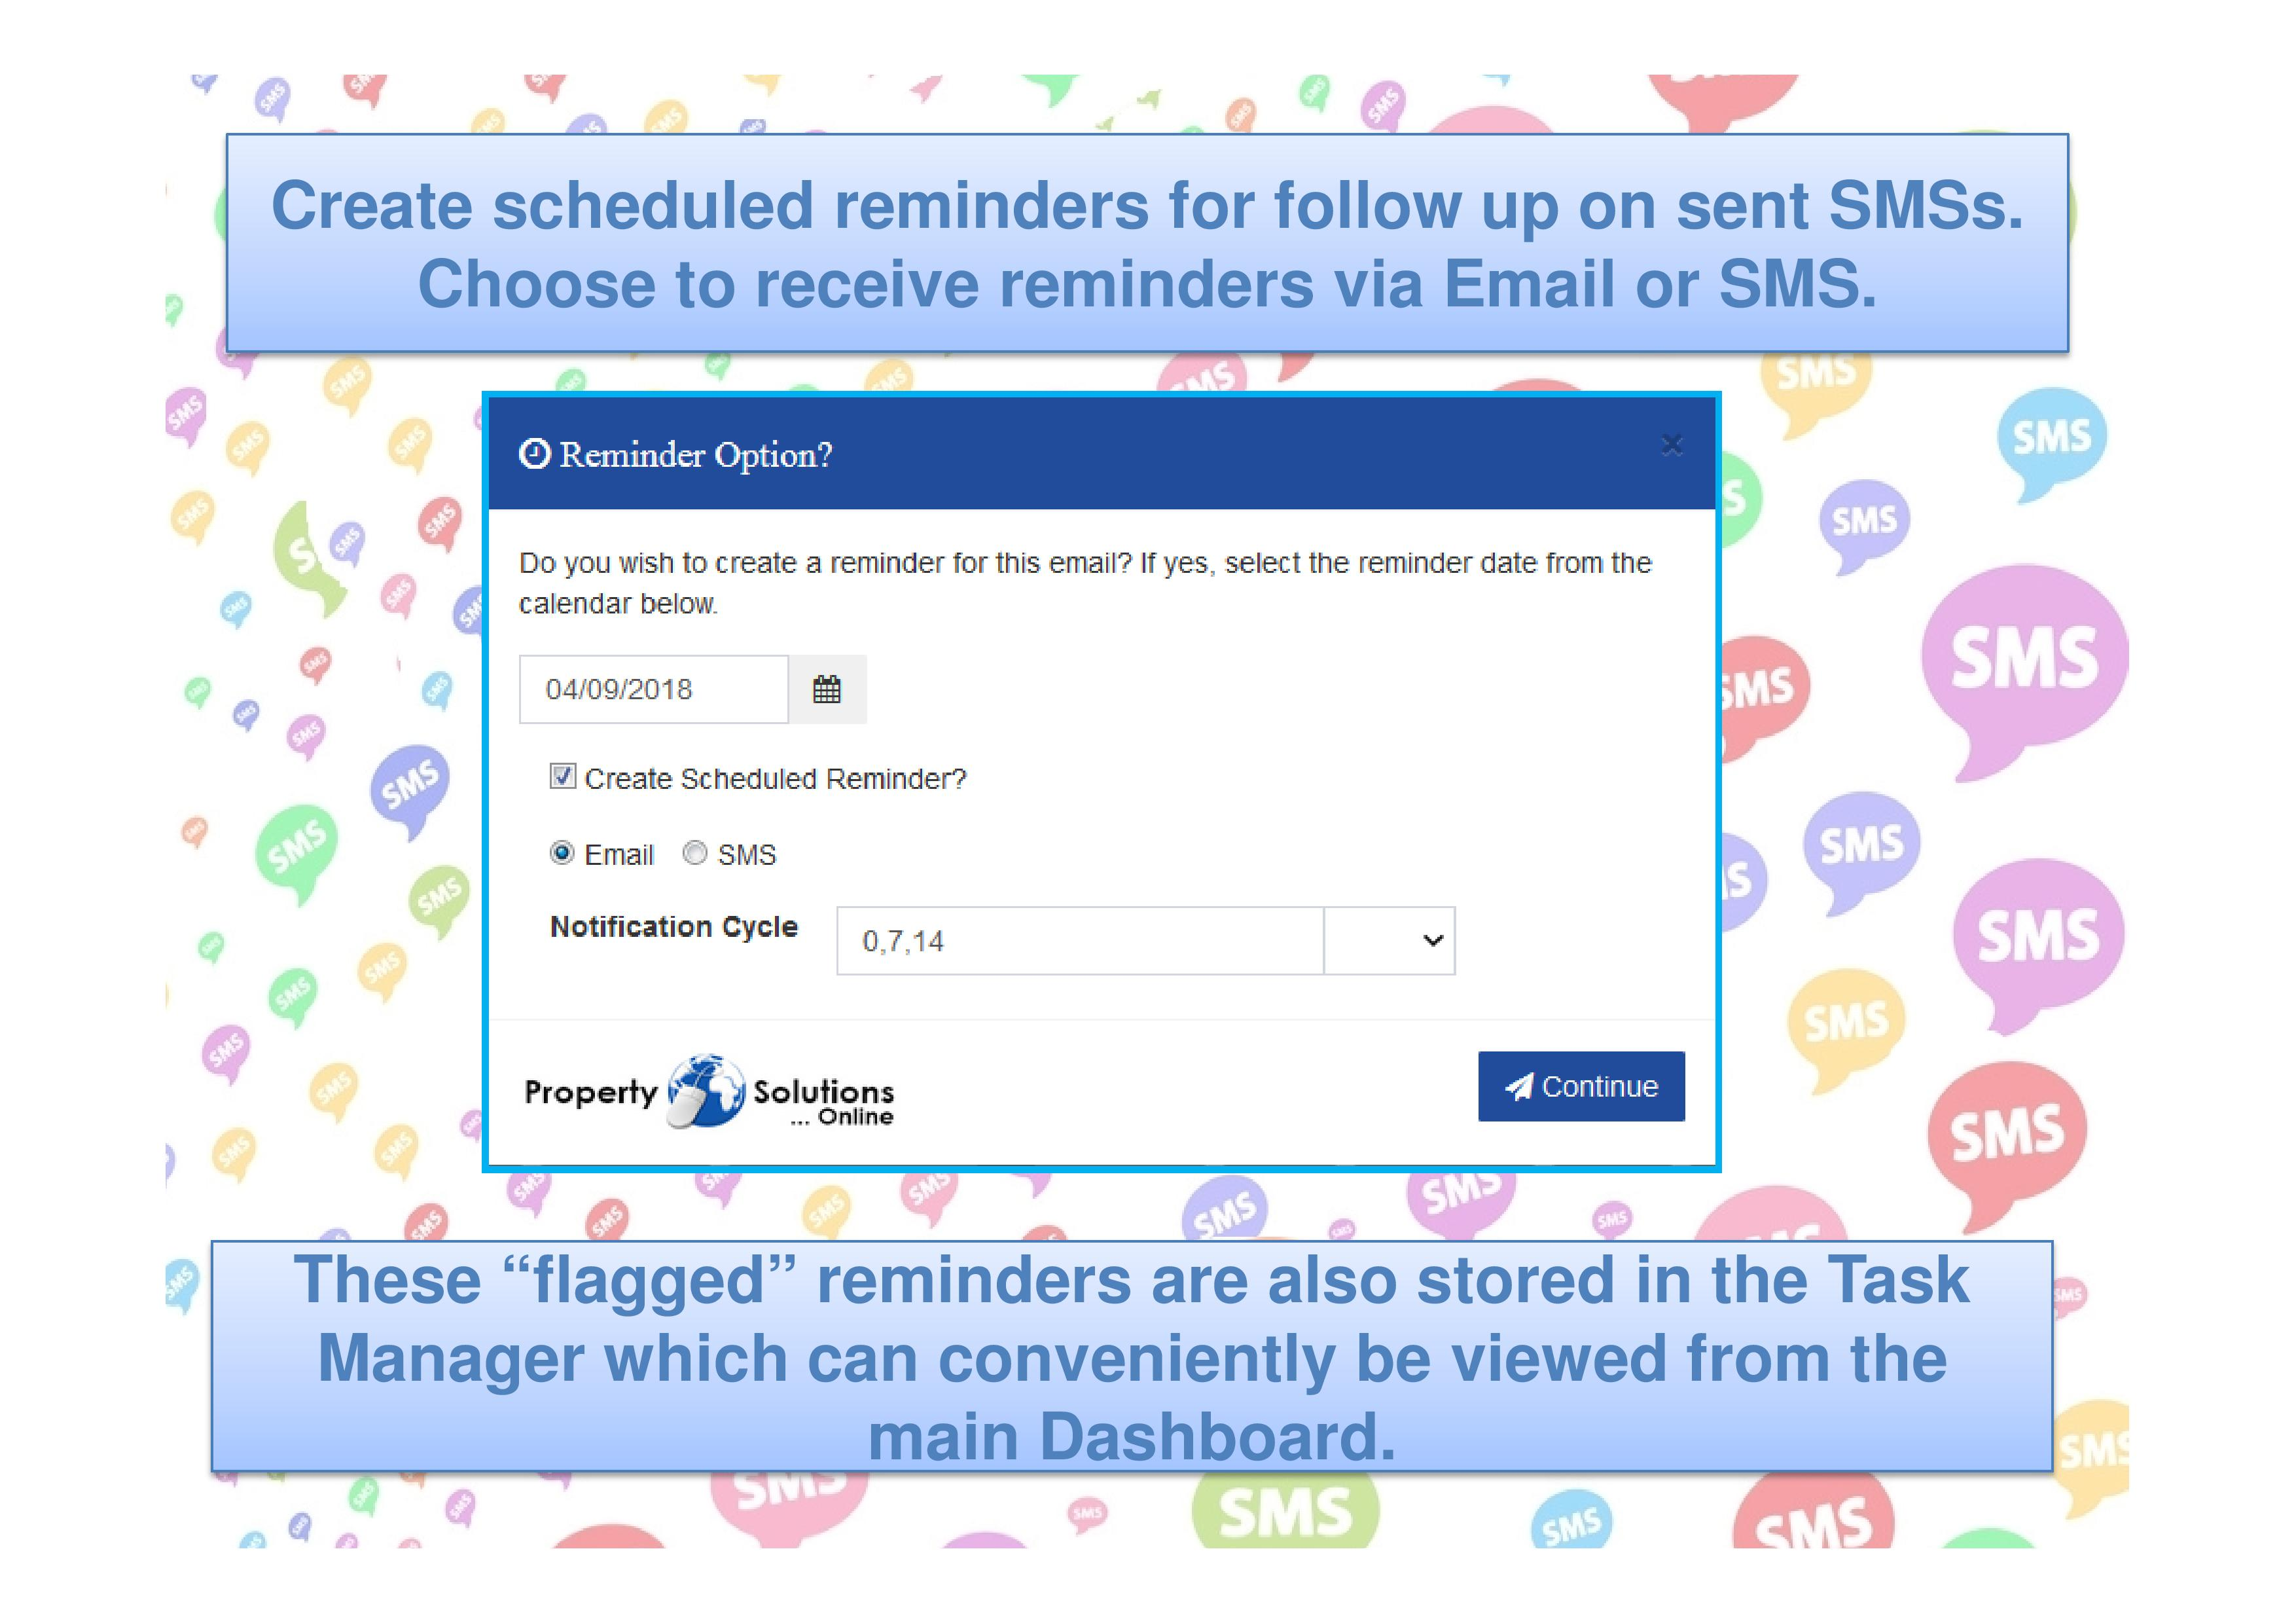 View SMS entries under the SMS History tab